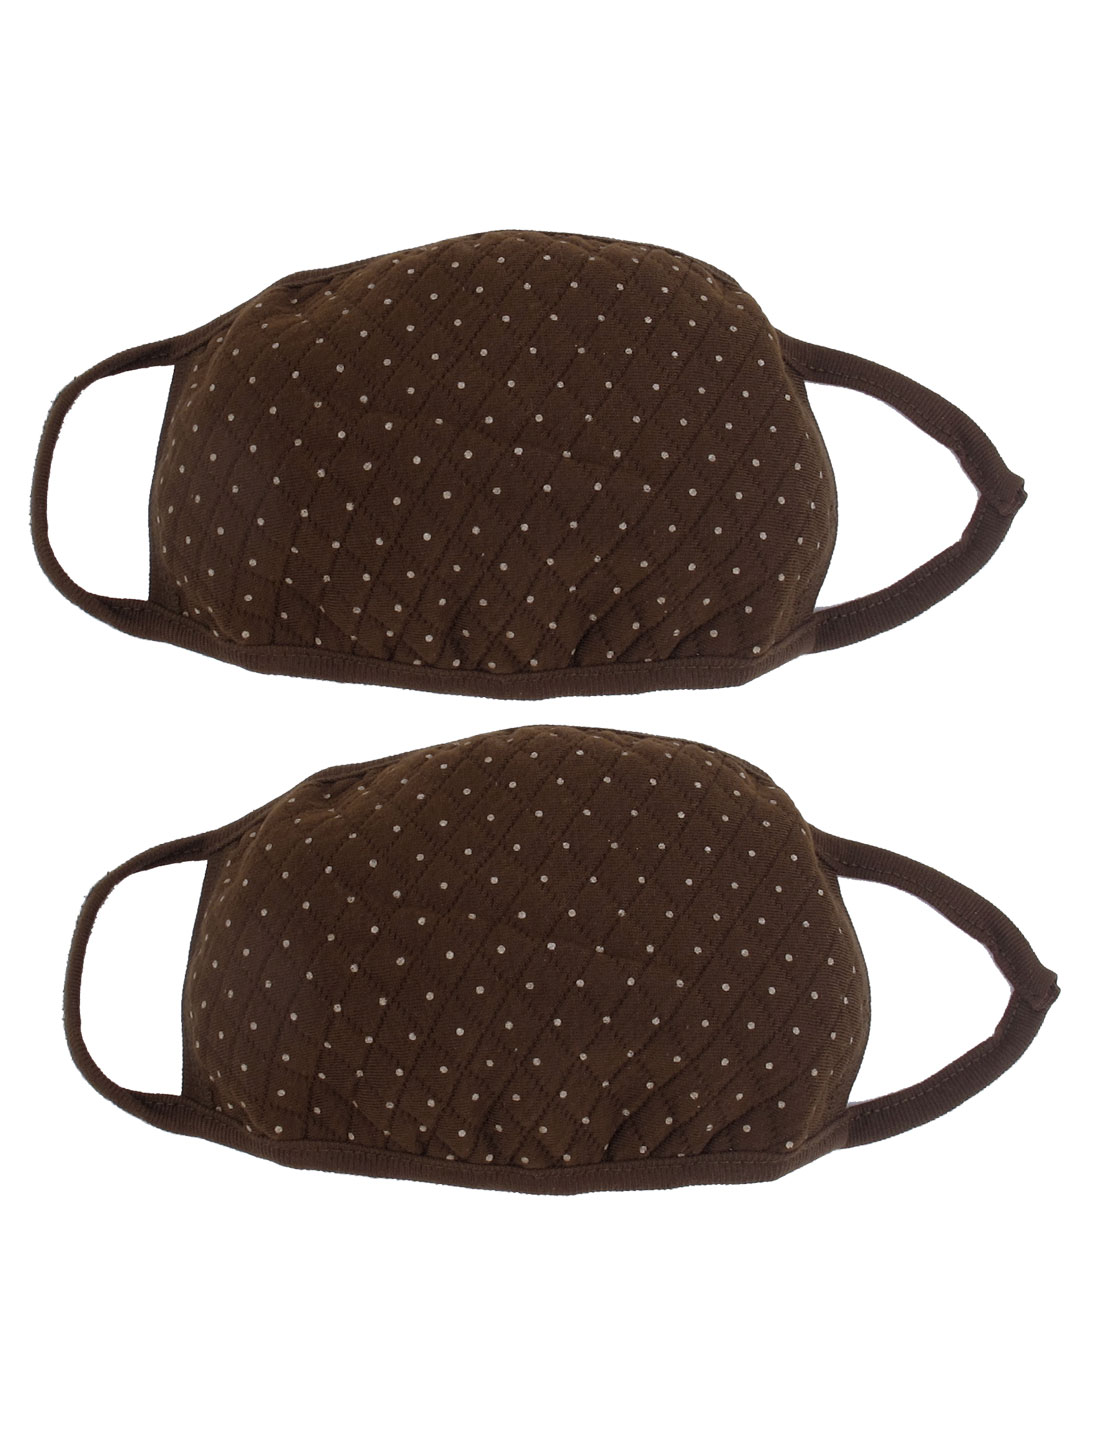 Cycling Cotton Blend Anti Dust Mouth Cover Face Mask Respirator 2pcs Brown